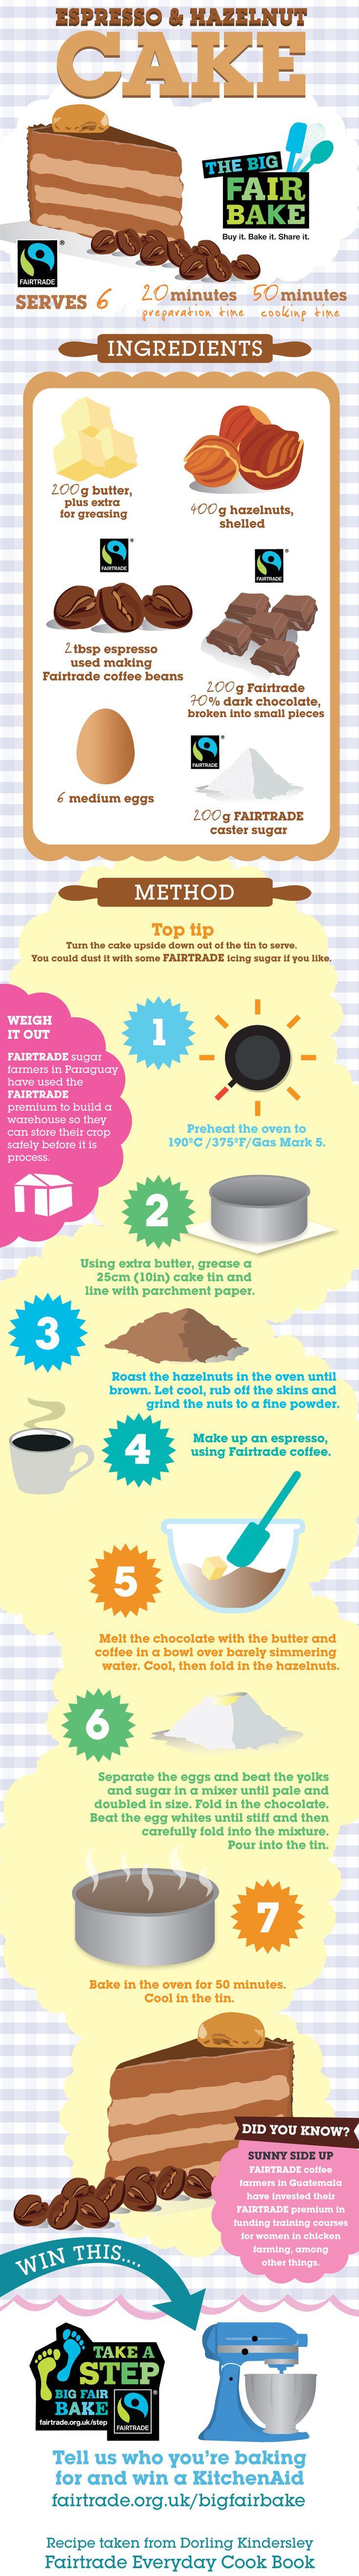 A handy infographic showing how to bake  espresso and hazelnut cake.        Visit www.fairtrade.org.uk/bigfairbake for more Fairtrade recipes.